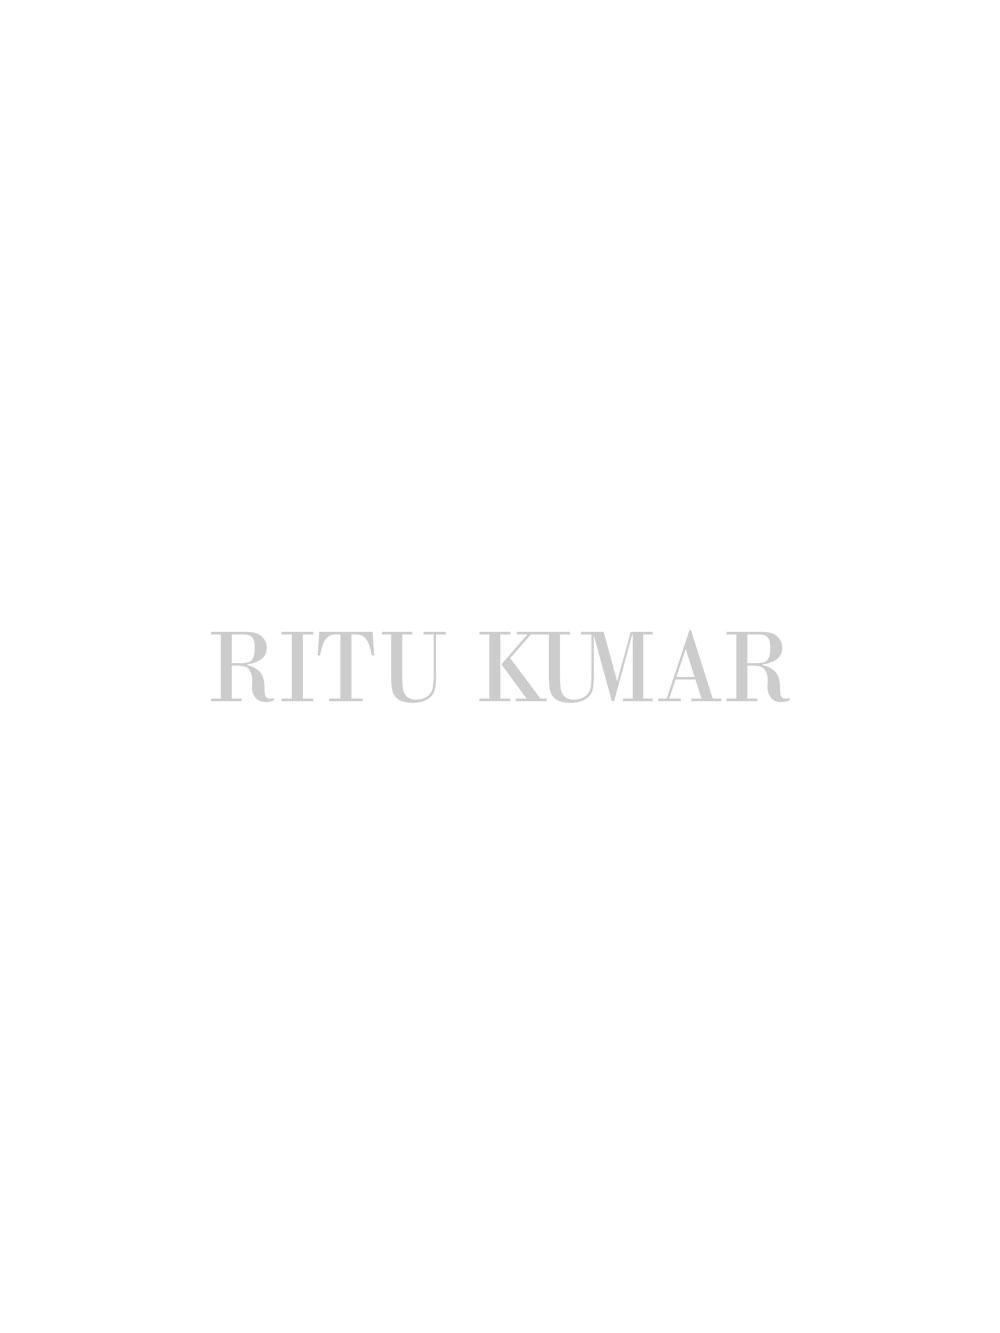 Green Baagh Charger Plate